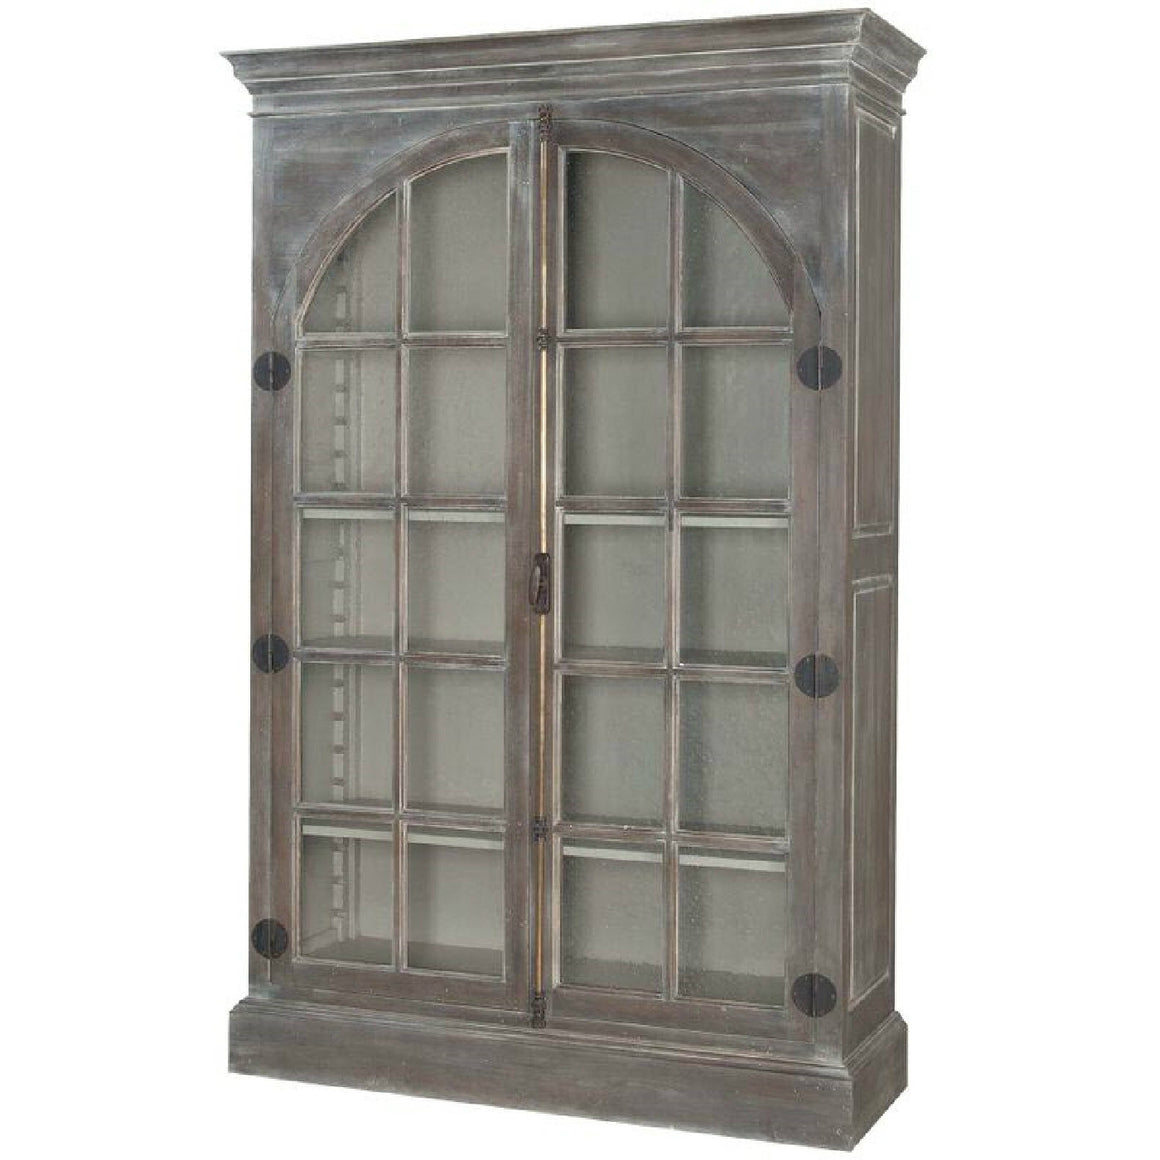 Cabinet - Manor Arched Door Display Cabinet